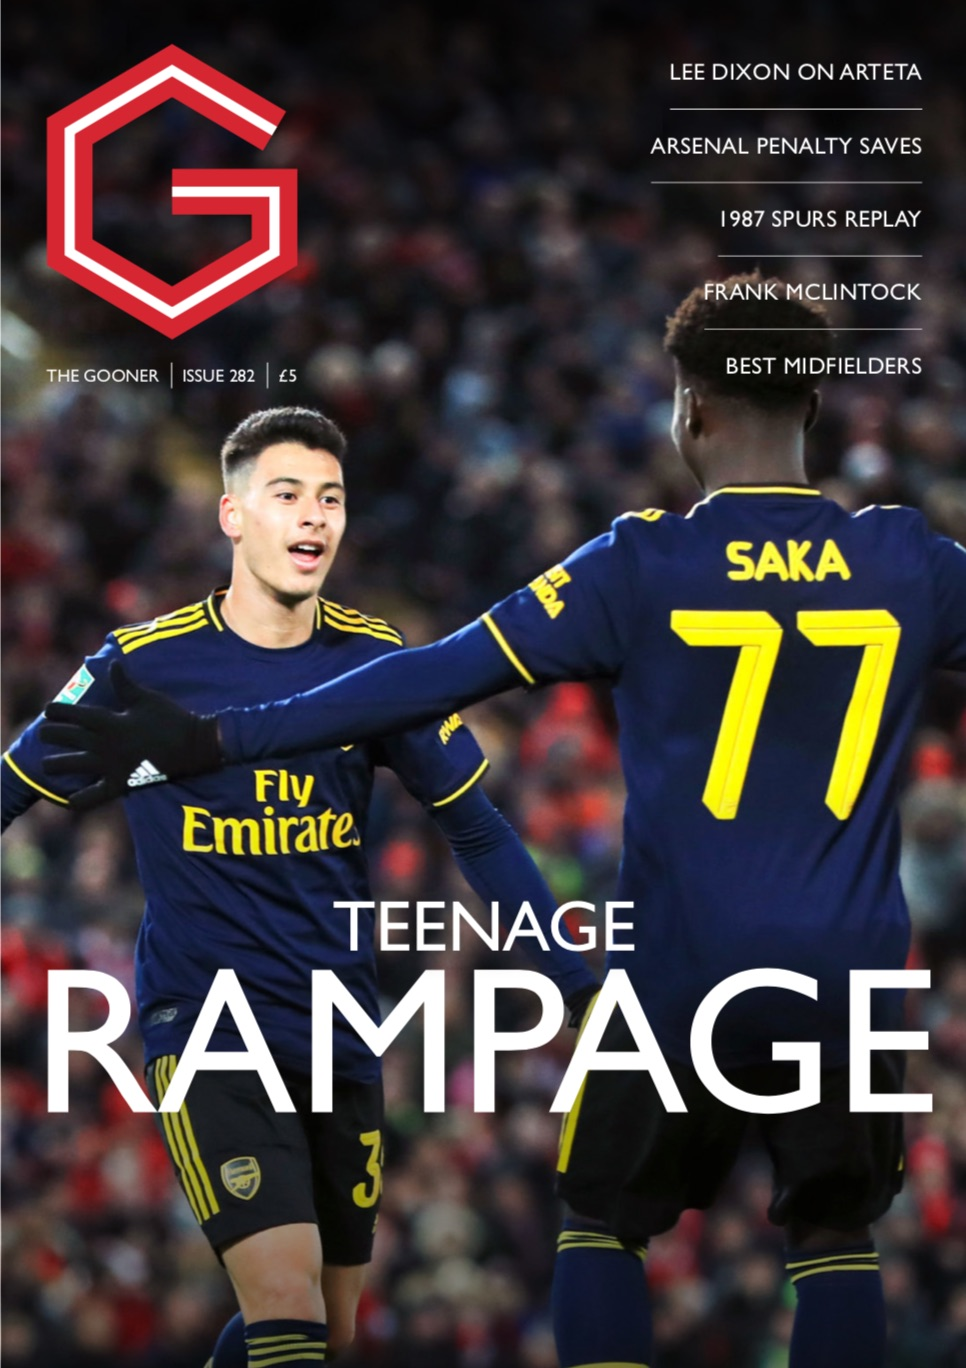 Current Edition – The Gooner Issue 282 (UK)